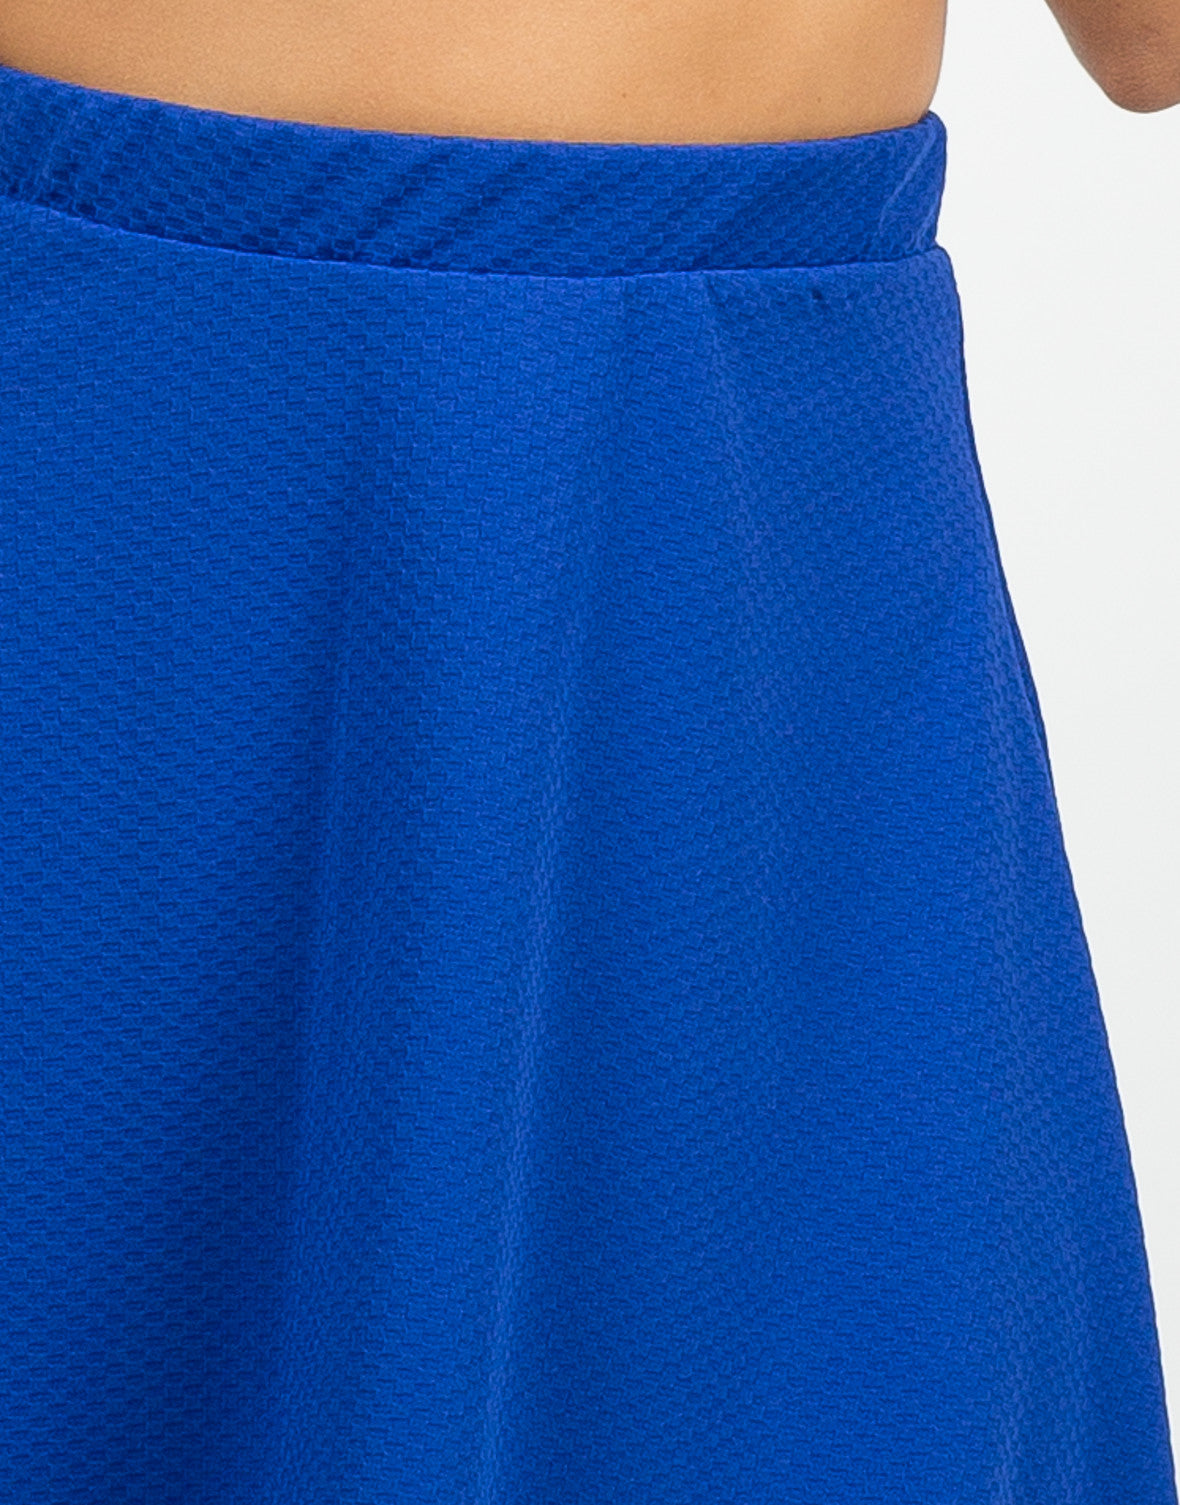 Detail of High Waisted Skater Skirt